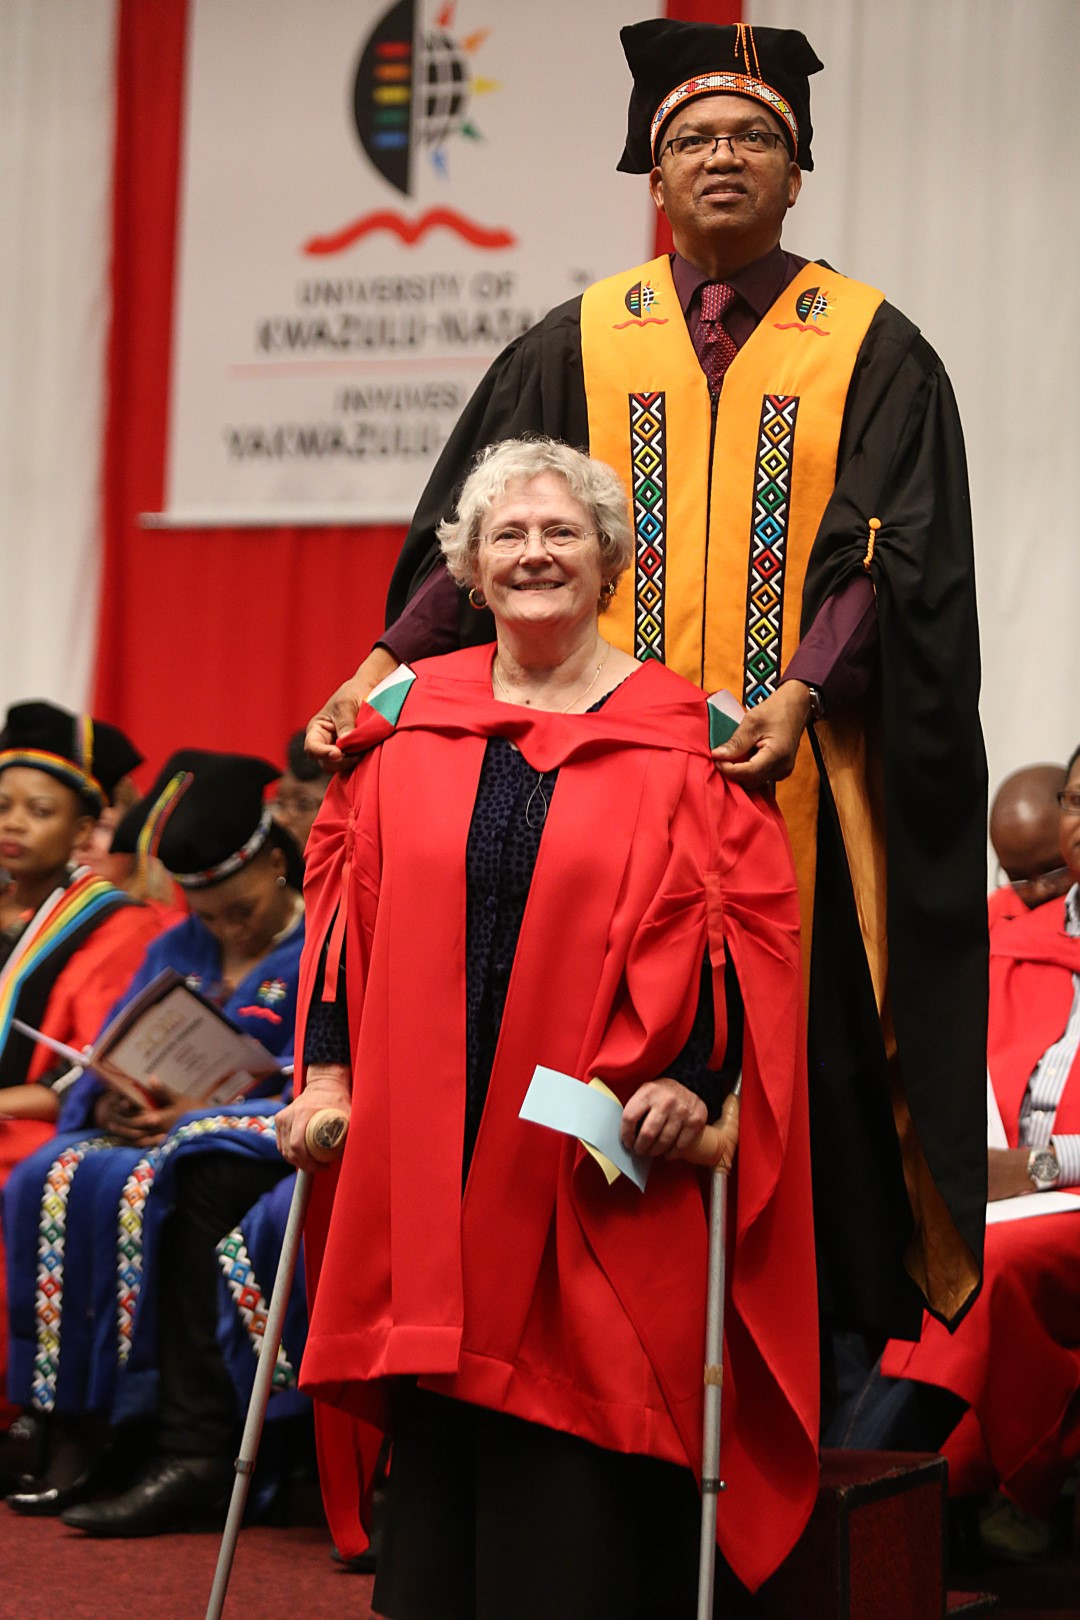 Dr Elizabeth Martiny graduated with her PhD in Religion and Theology from UKZN.